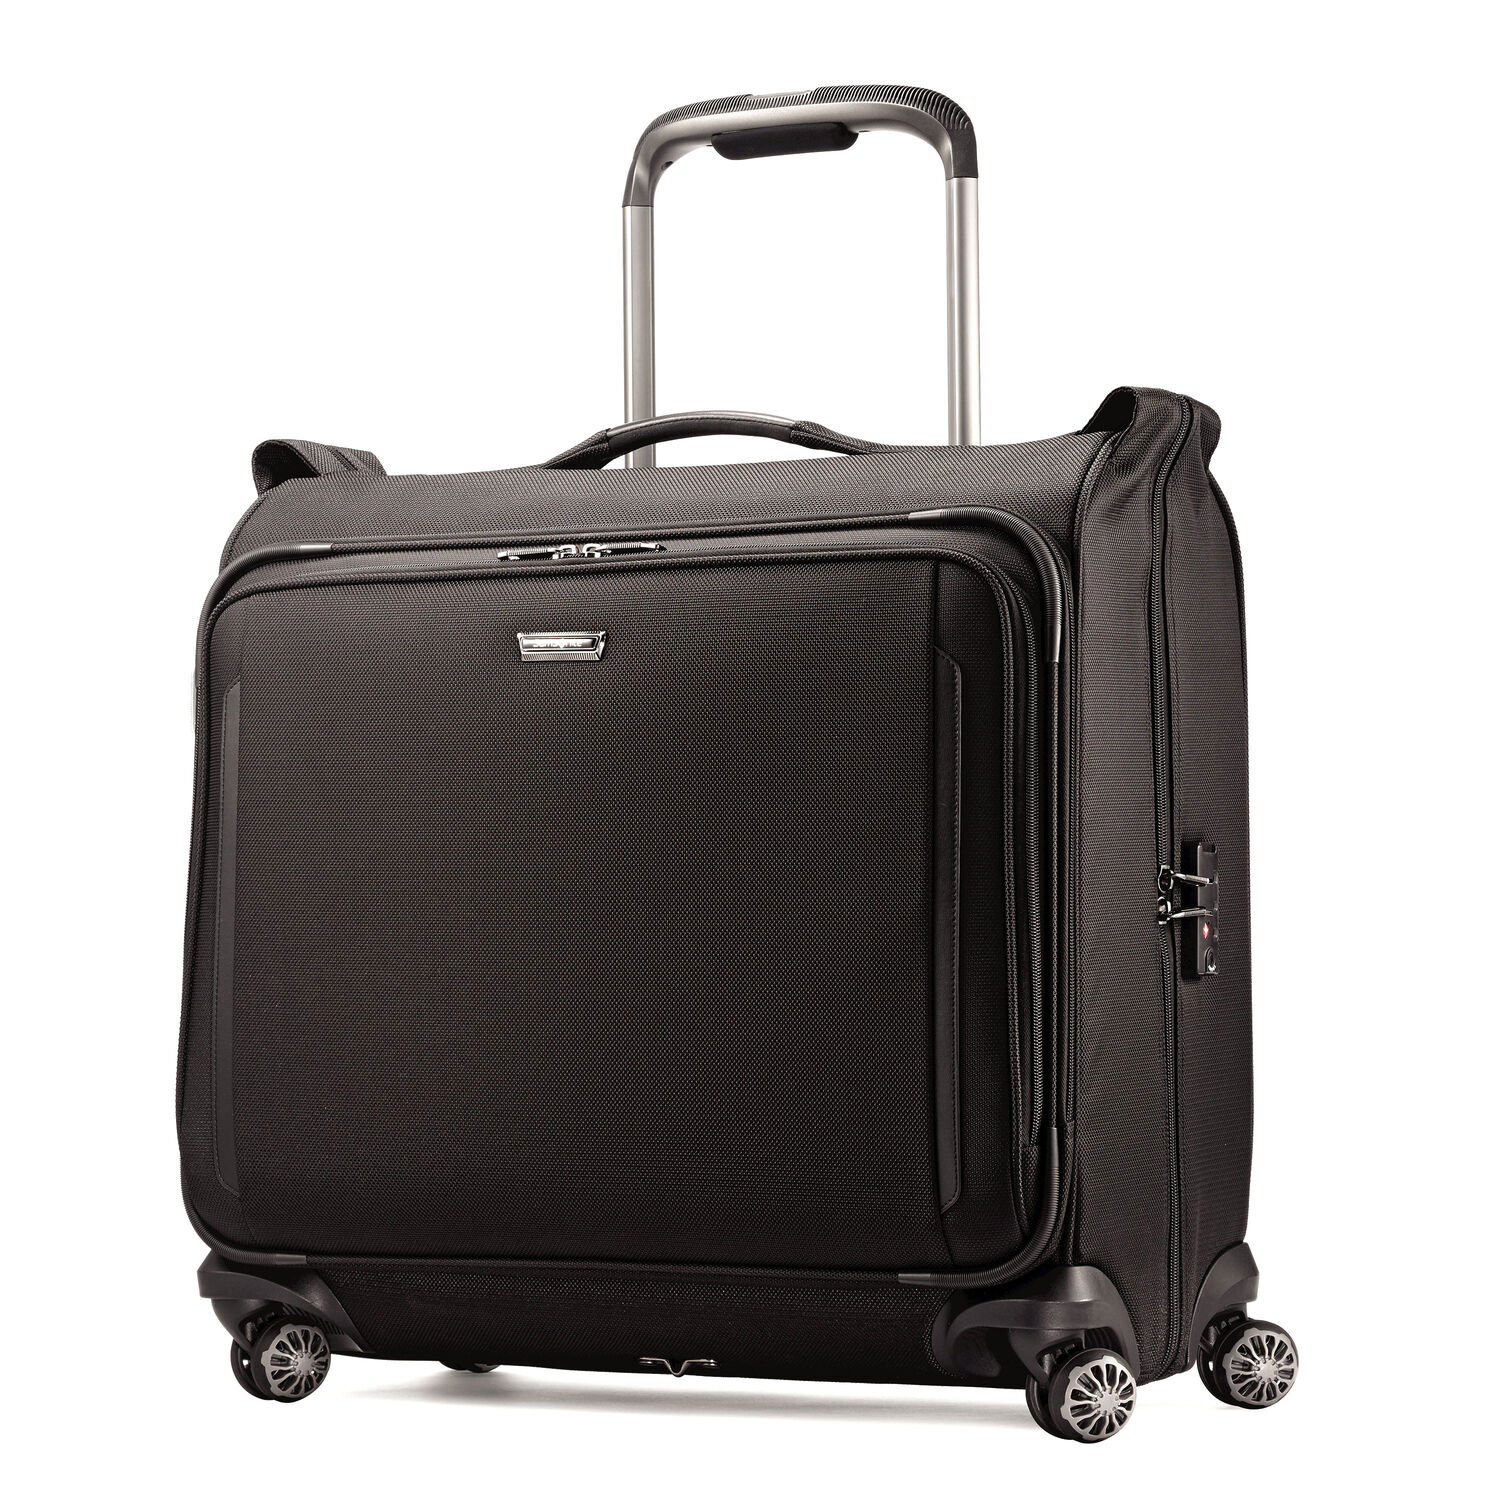 22b3e82961d6 Samsonite Silhouette XV Duet Voyage Garment Bag in the color Black.